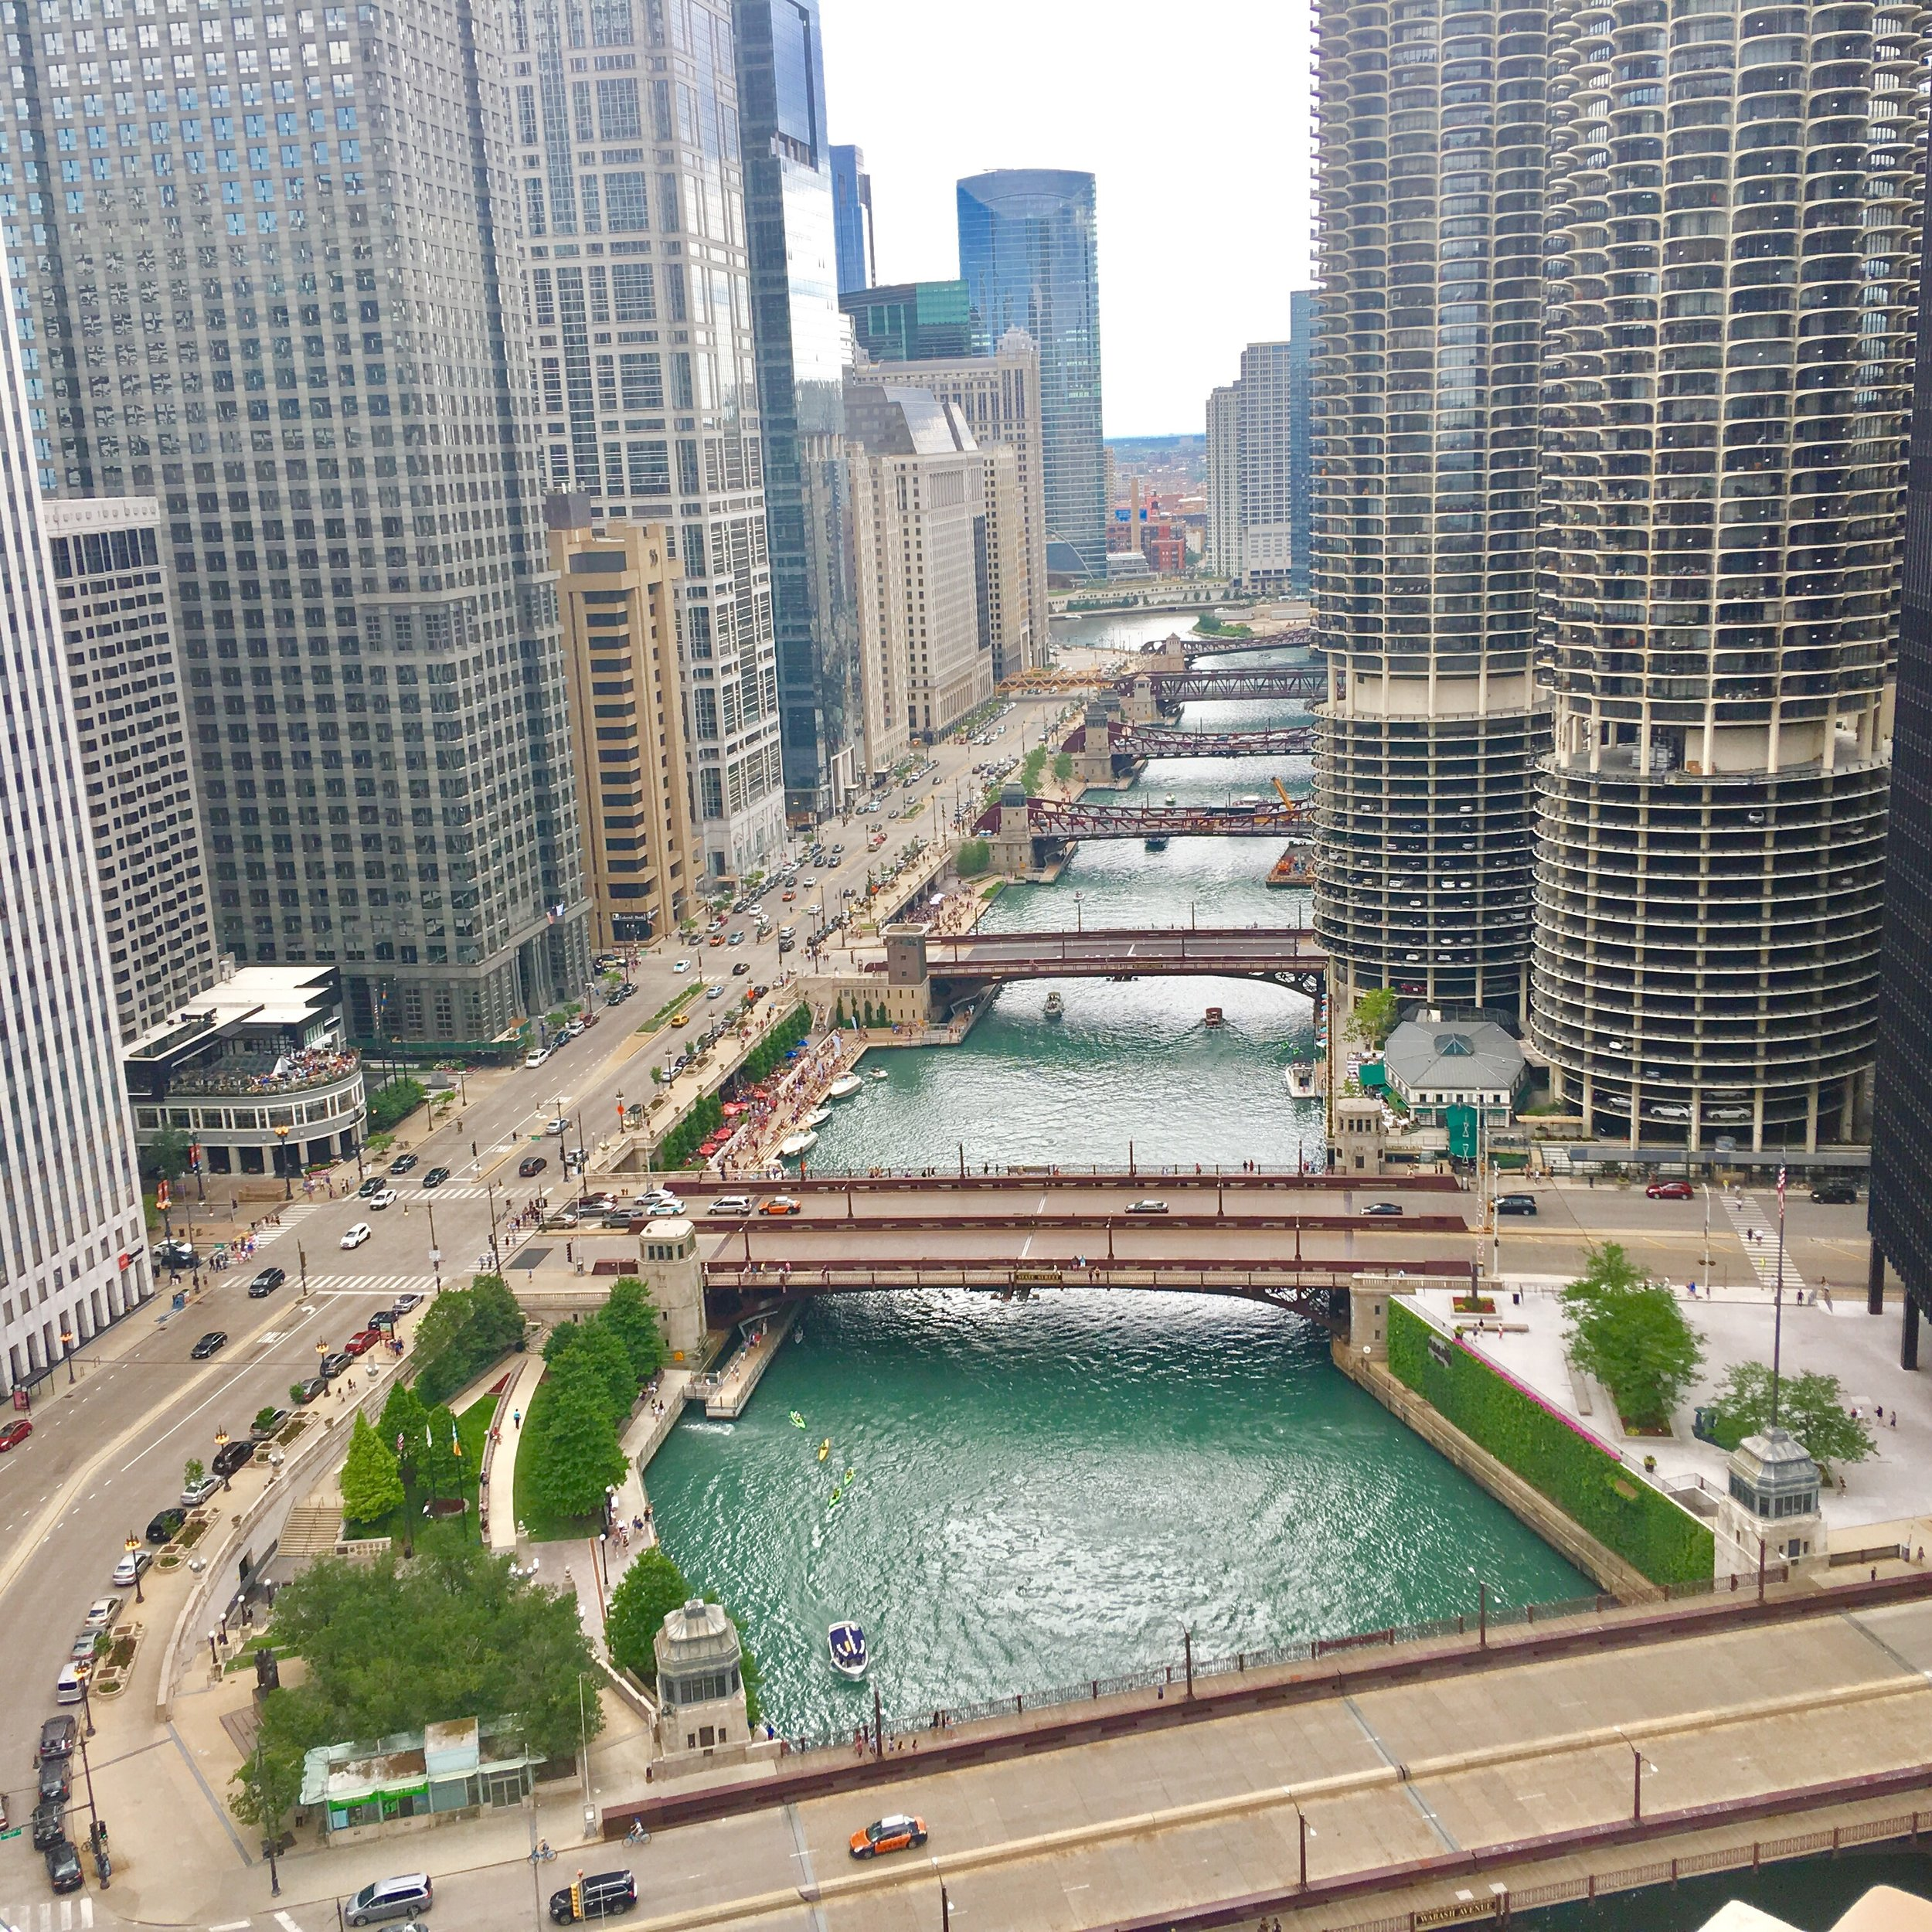 The Chicago River winding through the city's skyscrapers.